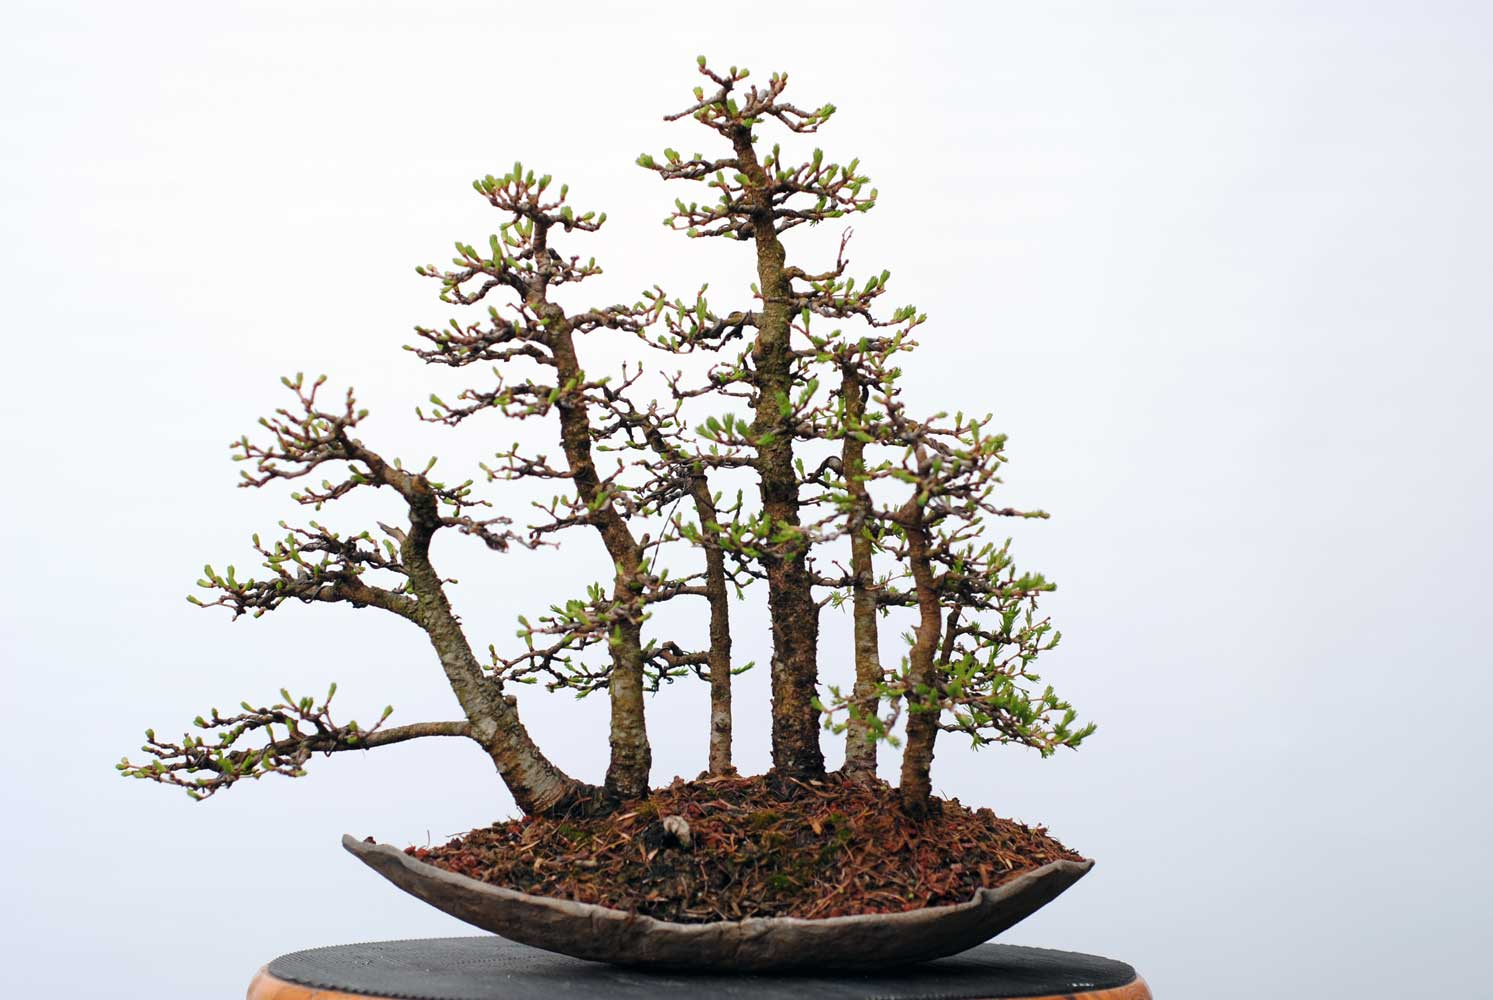 Lakeshore Bonsai In Toronto Canada Wiring Lesson Pruning And Wire Removal Were The Normal Spring Chores For This Little Forest